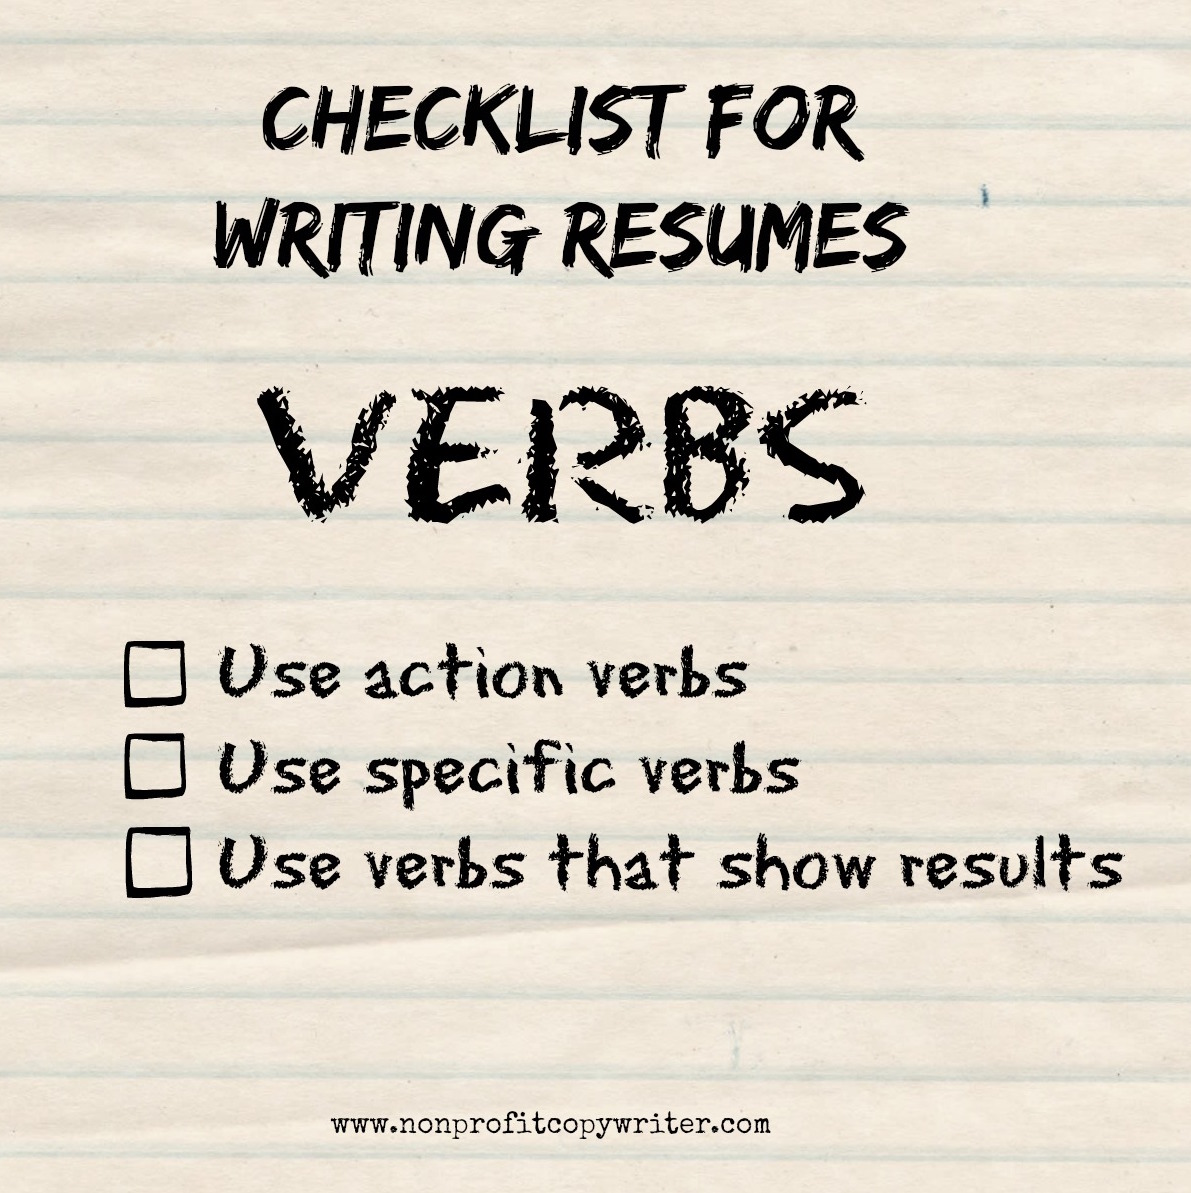 Resume Writing Guide for Verbs from Nonprofit Copywriter